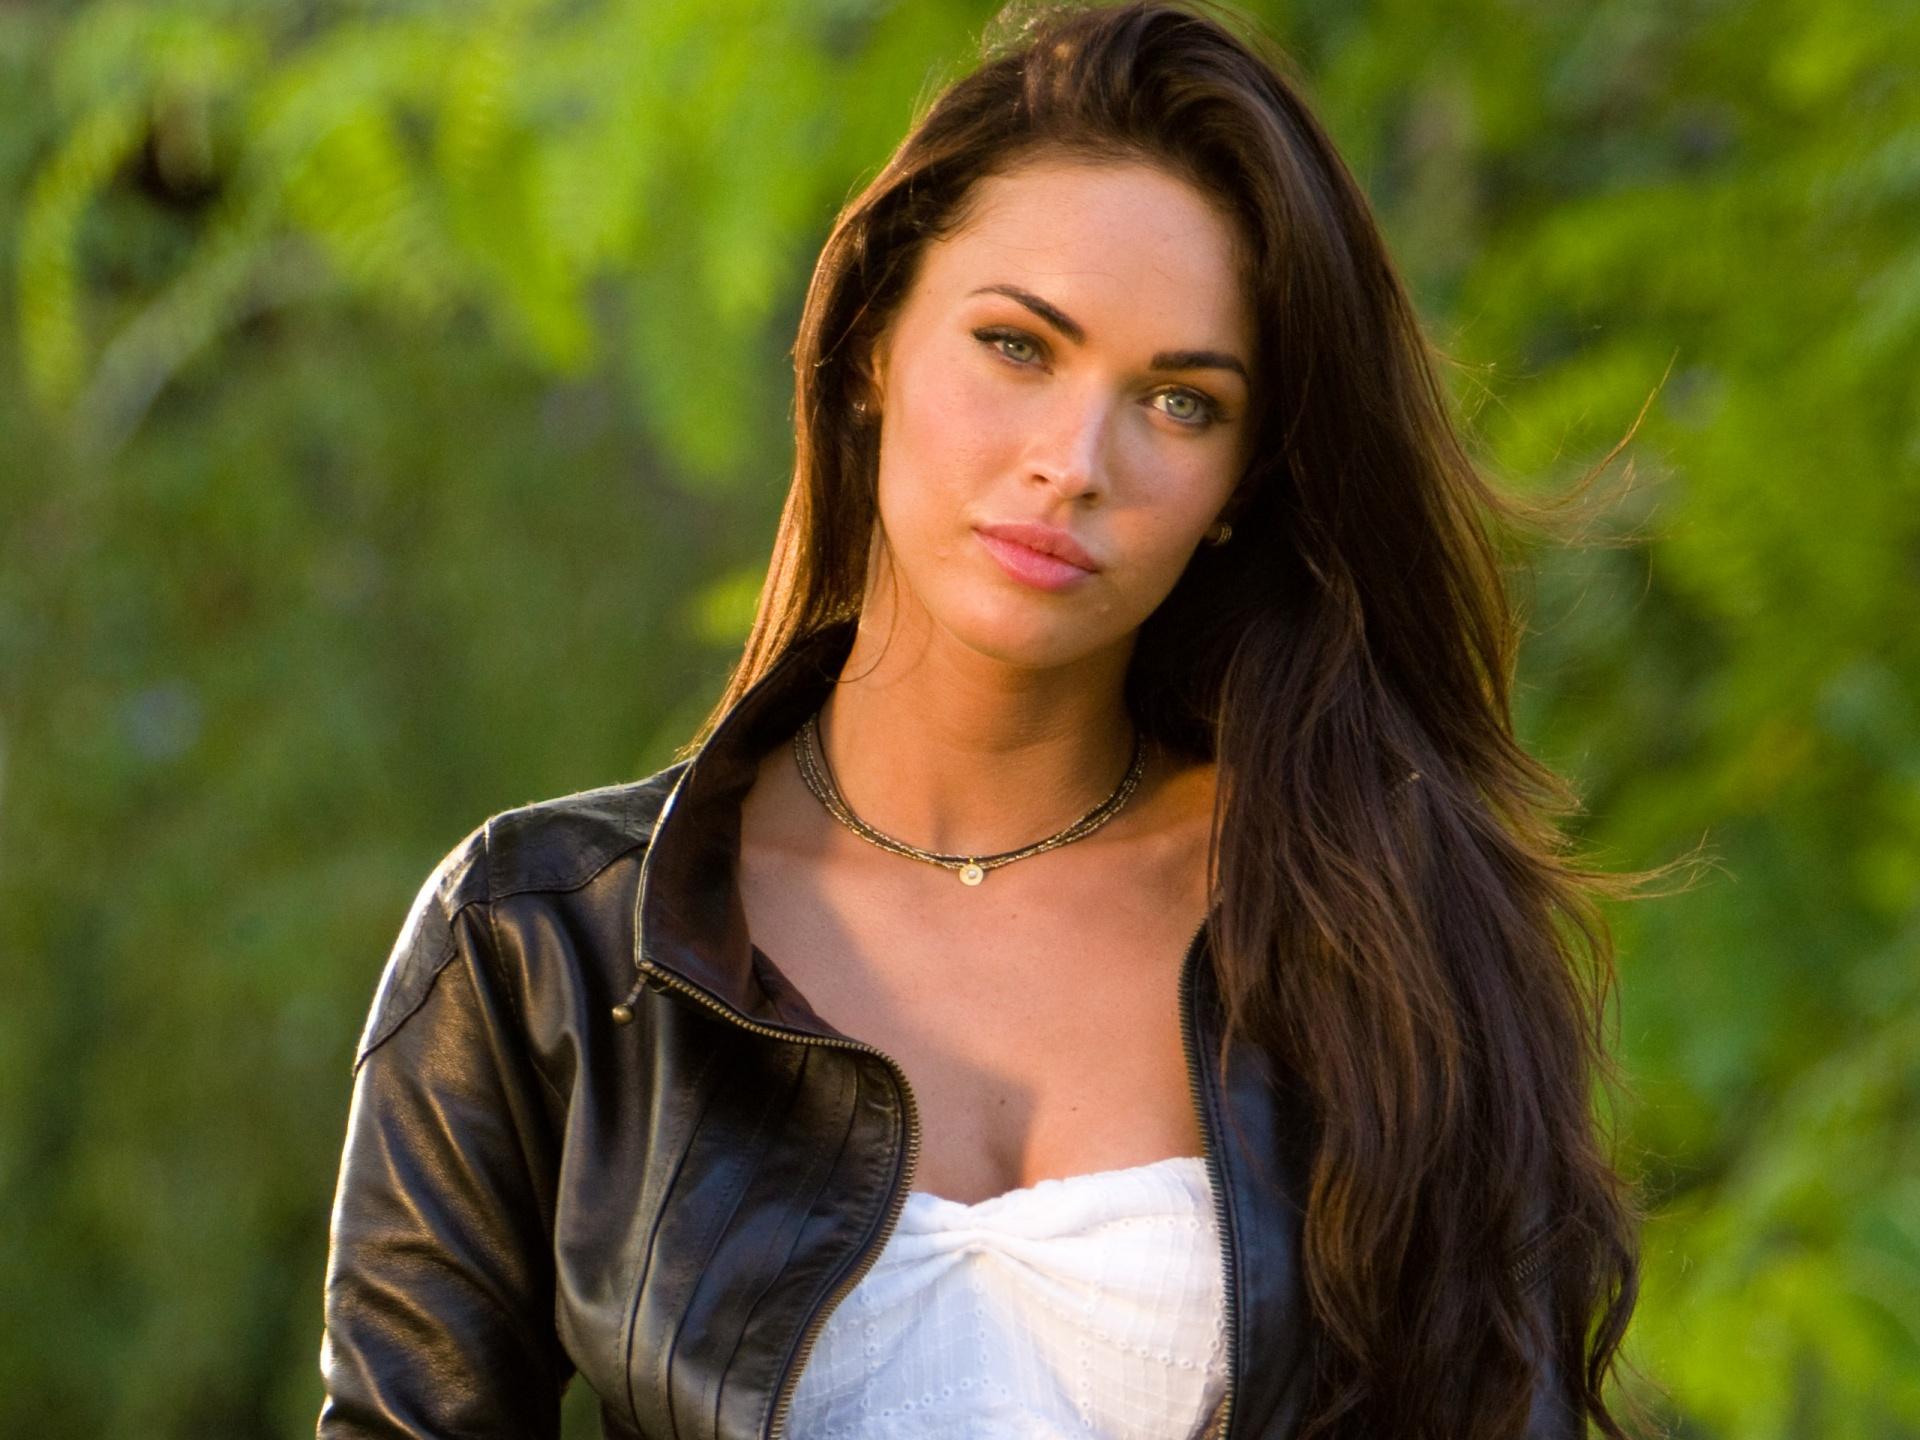 megan fox wallpapers hd A7